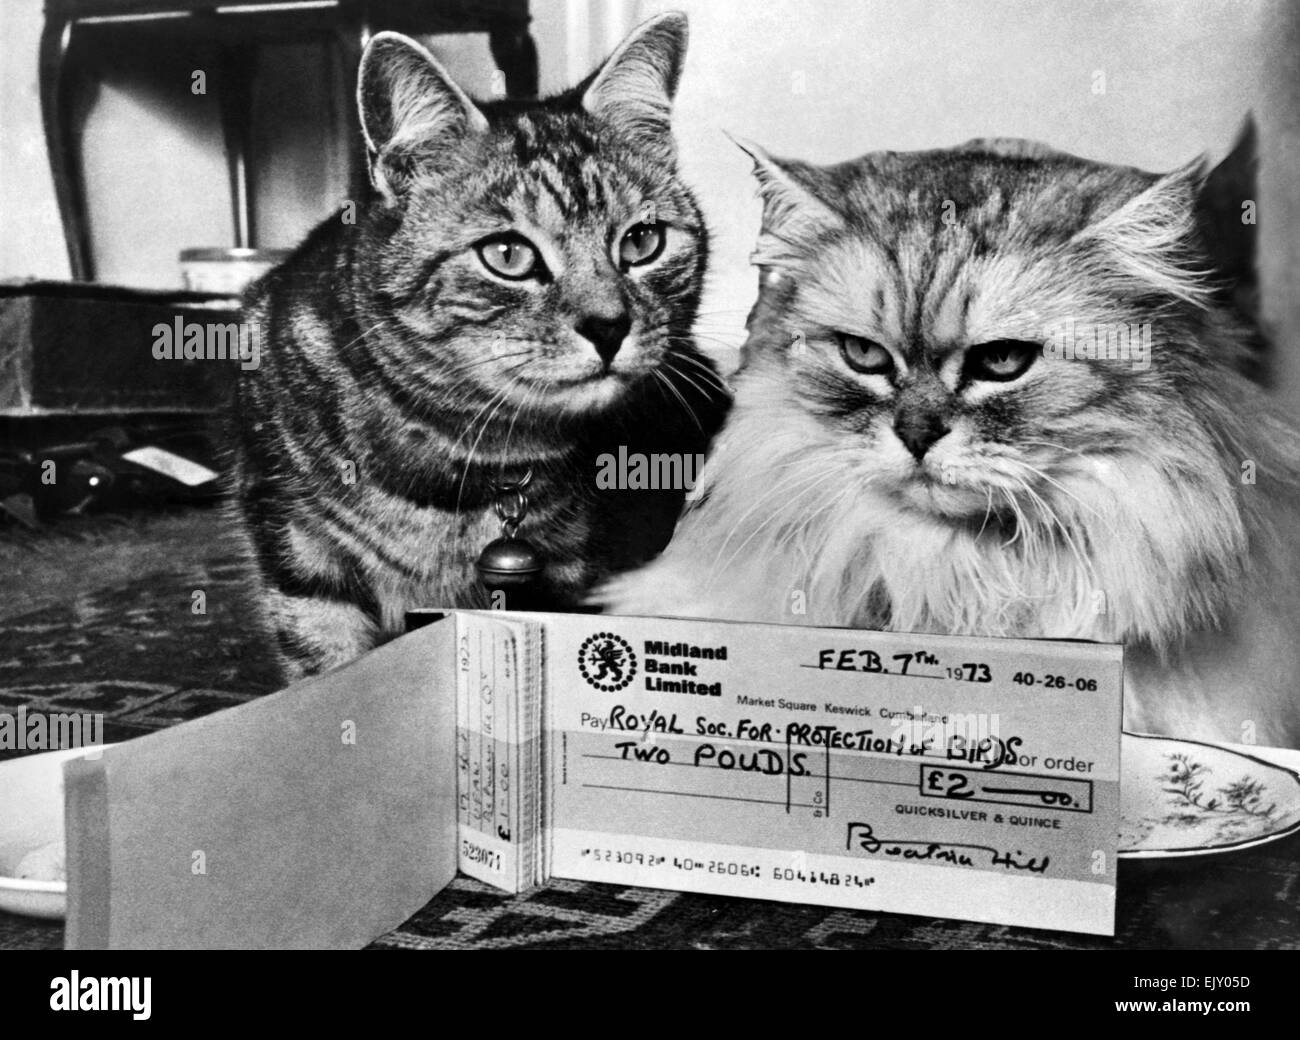 Animals: Cats. Quince (left) and Quicksilver ... settling the account. February 1973 P019776 - Stock Image